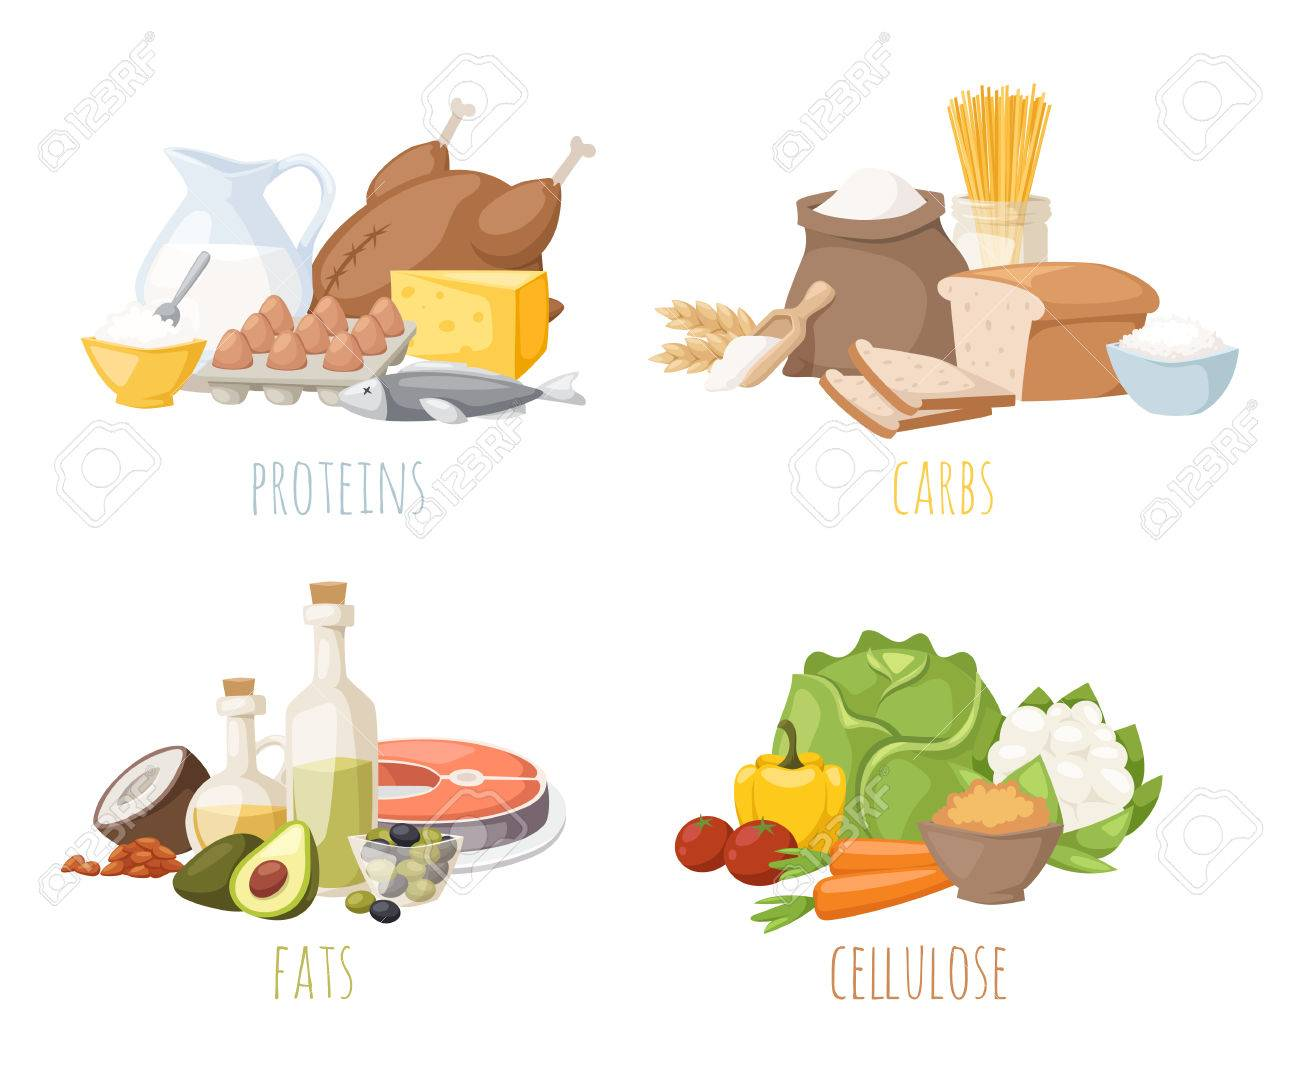 hight resolution of healthy nutrition proteins fats carbohydrates balanced diet cooking culinary and food concept vector